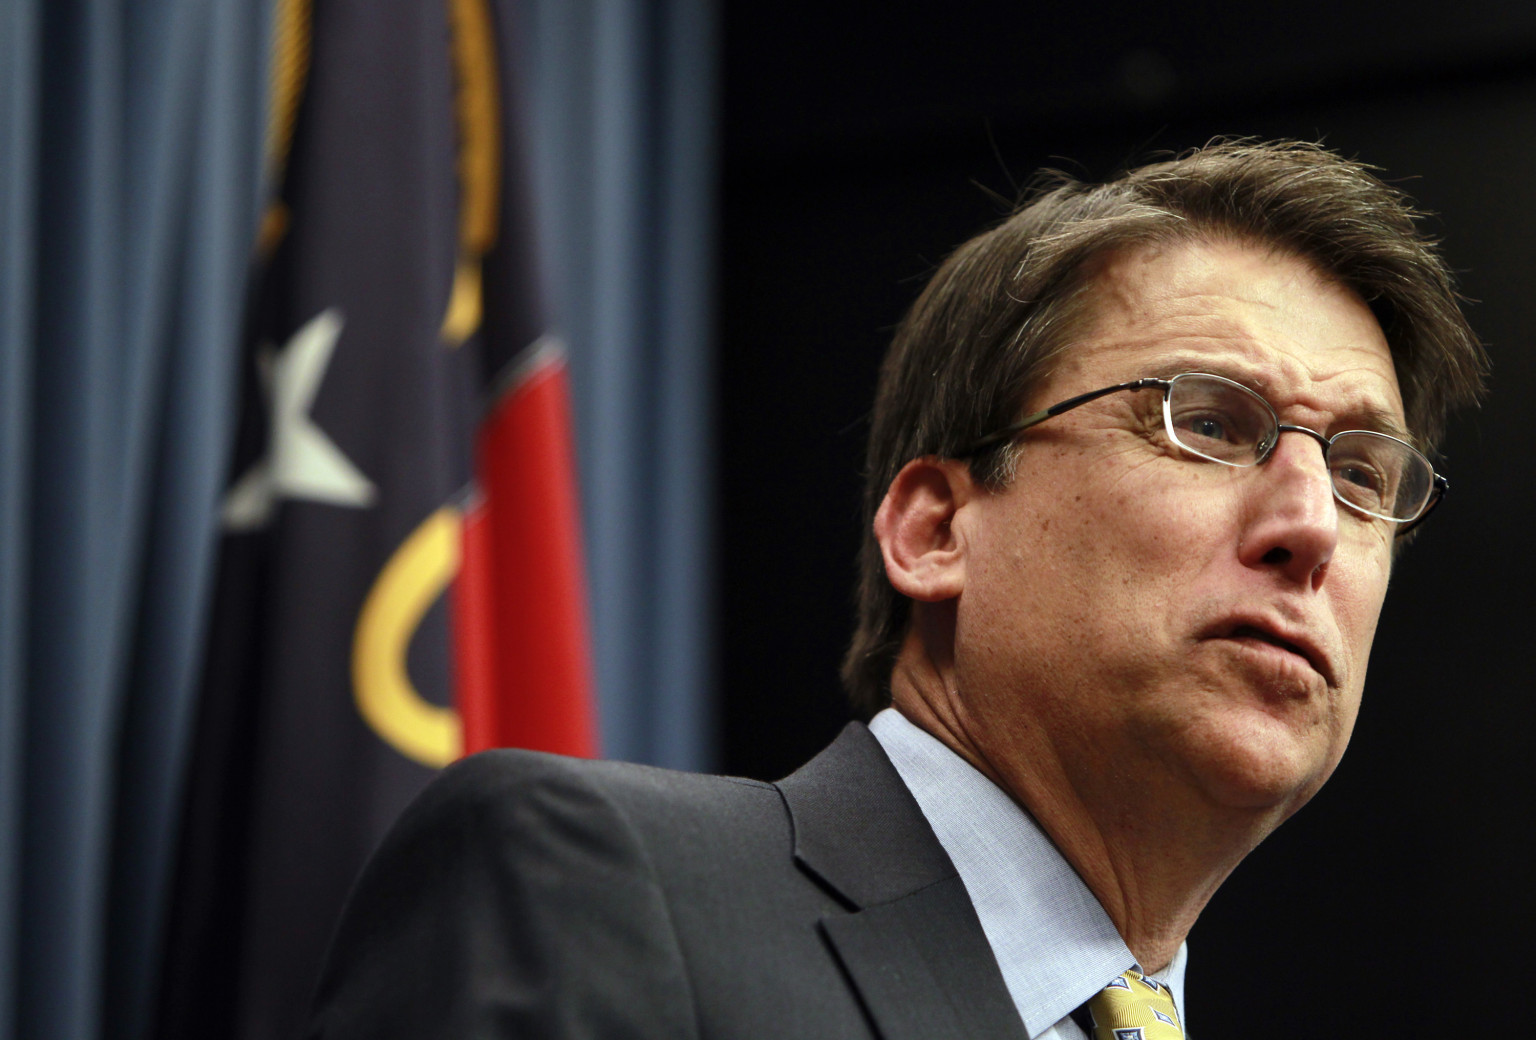 Pat McCrory's loss is my gain, and I'm not sure how I feel about that